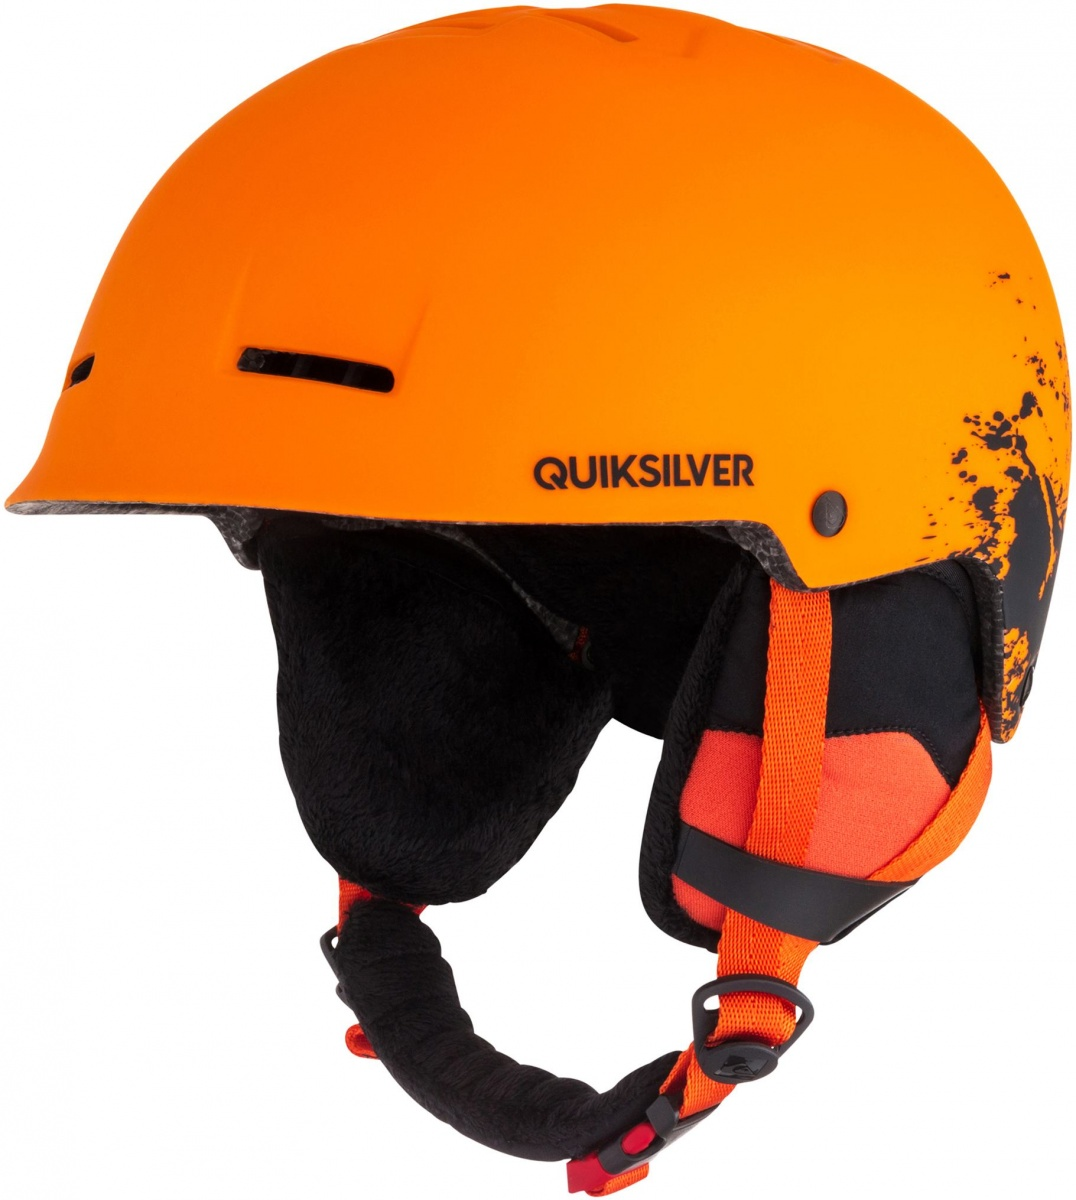 quiksilver motion black casques de ski cat gorie casques de ski. Black Bedroom Furniture Sets. Home Design Ideas